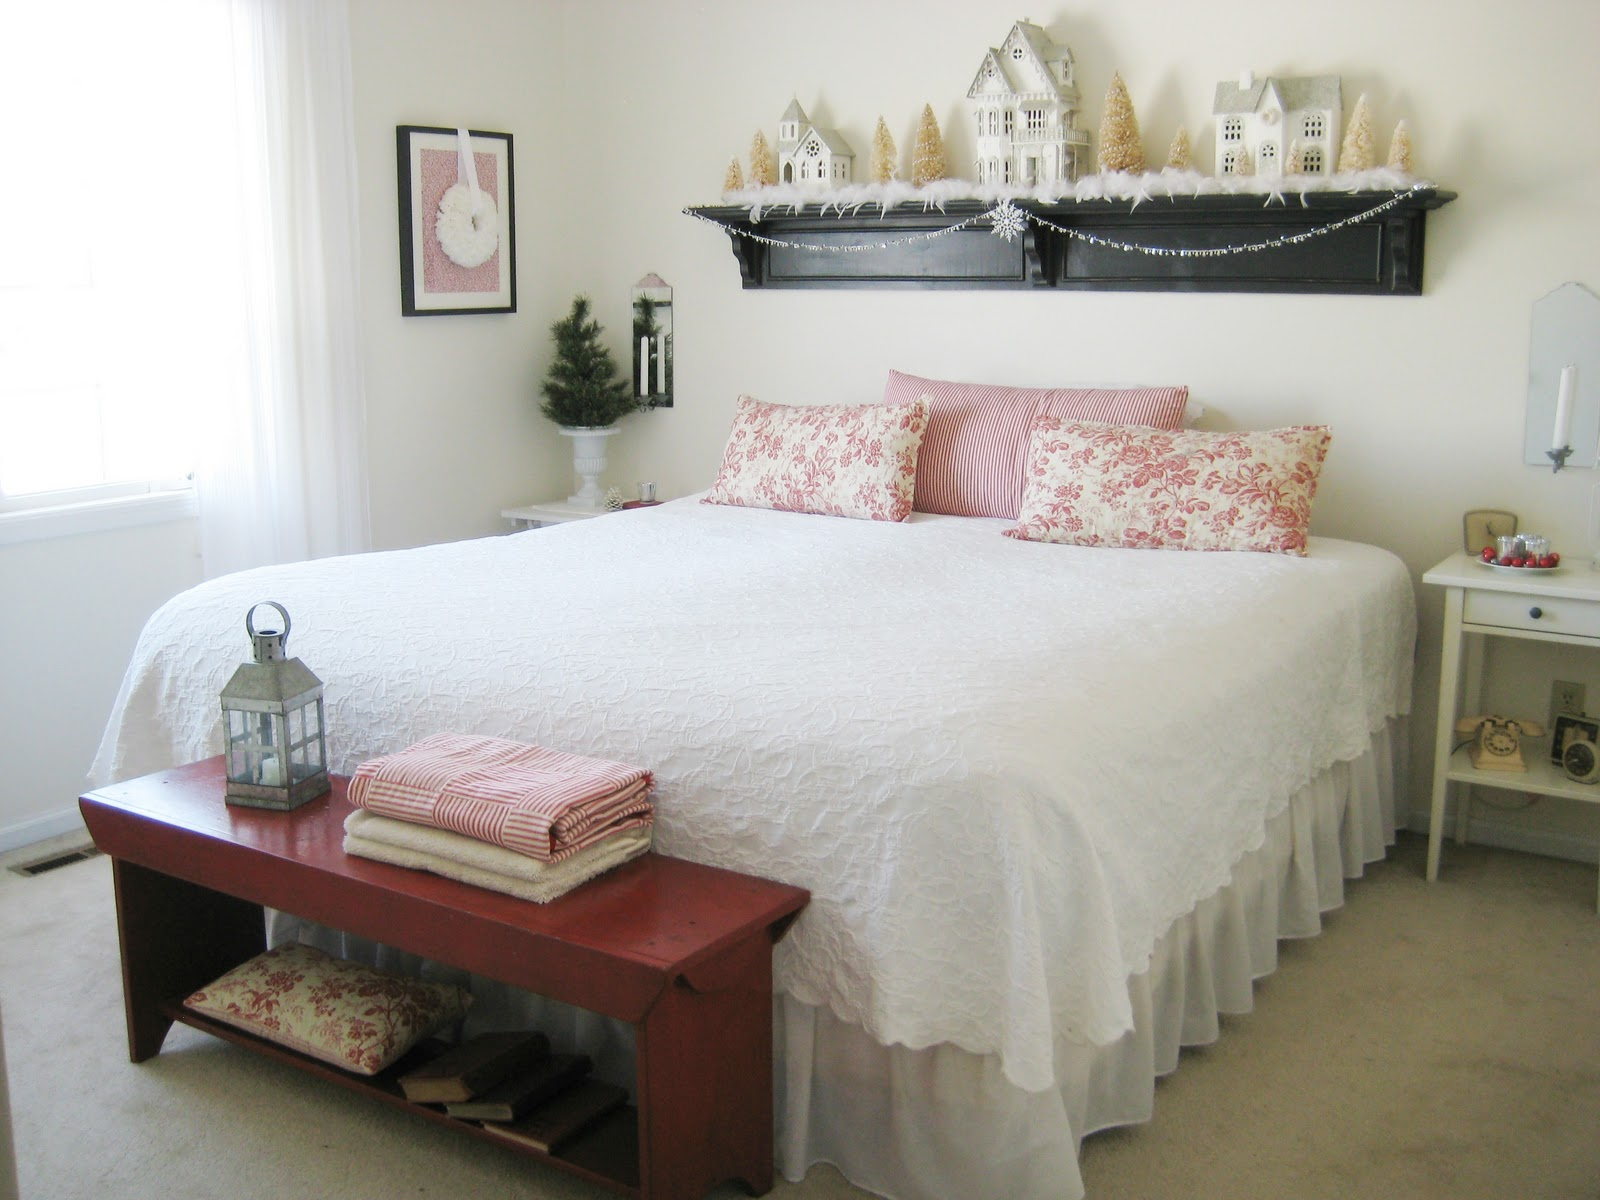 pillows table books bed lamp accessories Inspiration